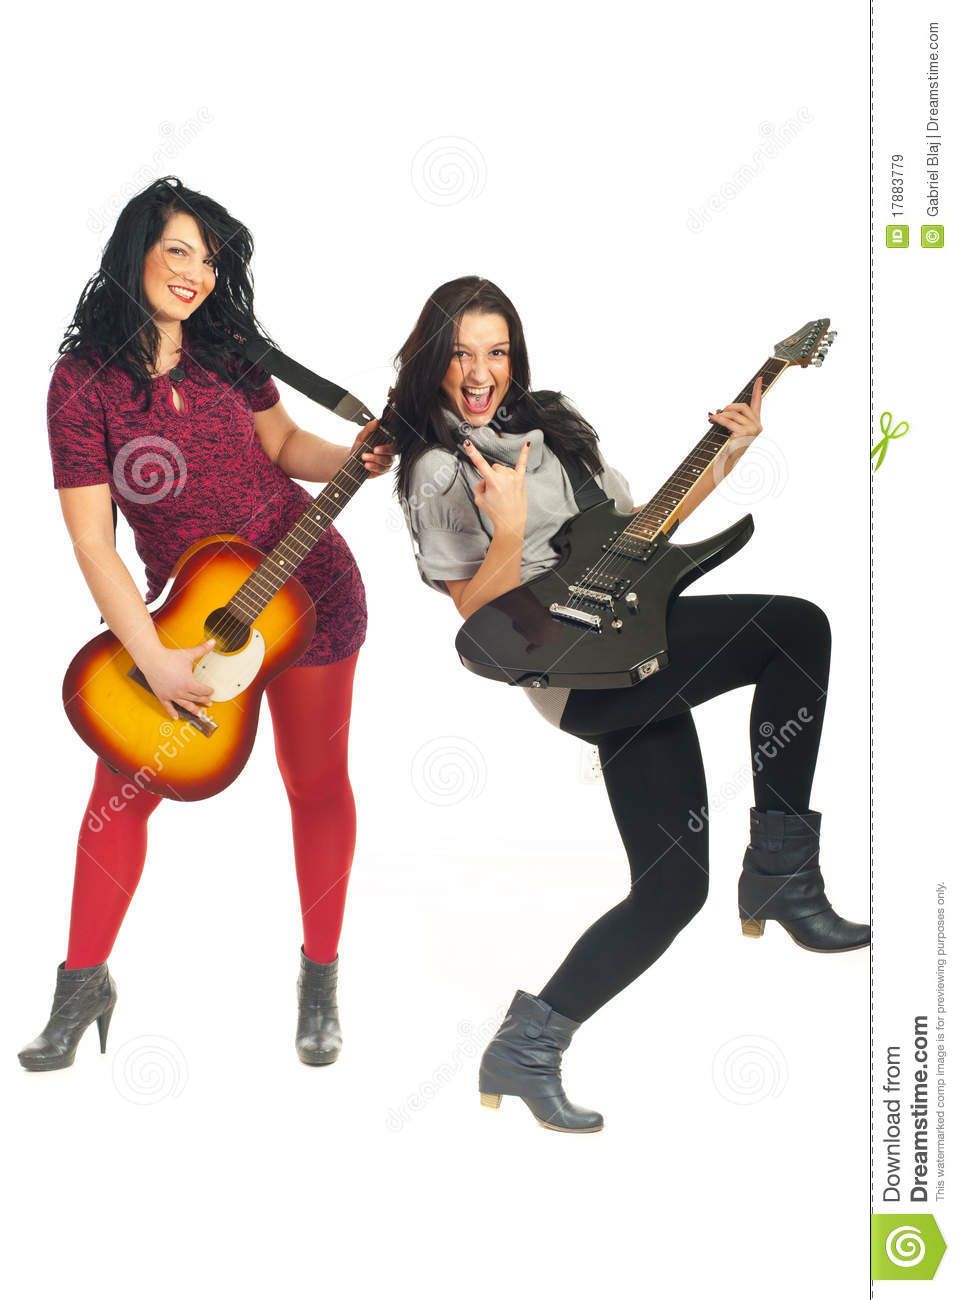 rock girls Supporting a culture of positive self-esteem and collaboration among girls & gender non-conforming youth while building community through music.